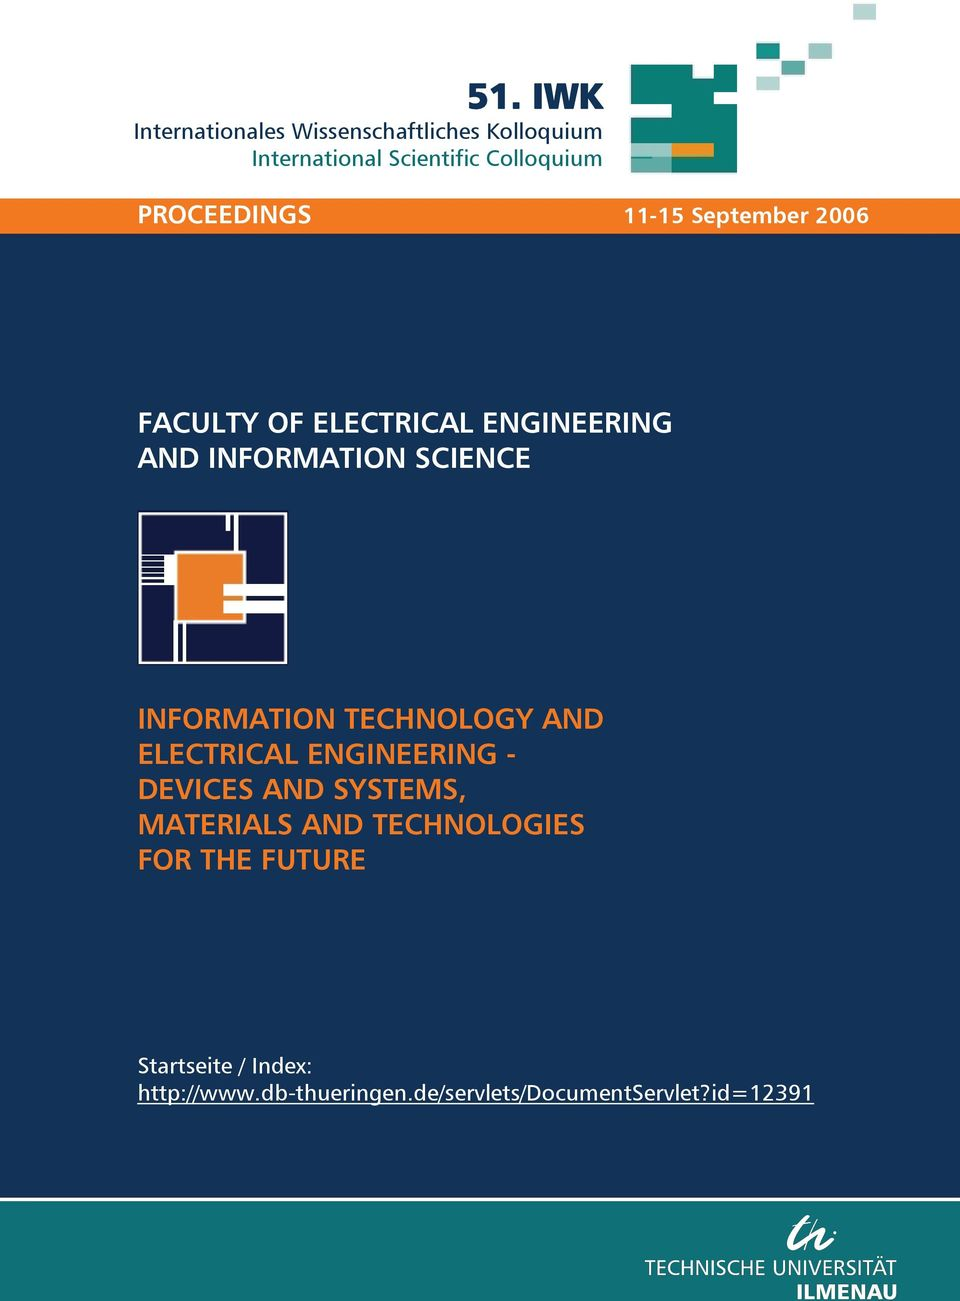 INFORMATION TECHNOLOGY AND ELECTRICAL ENGINEERING - DEVICES AND SYSTEMS, MATERIALS AND